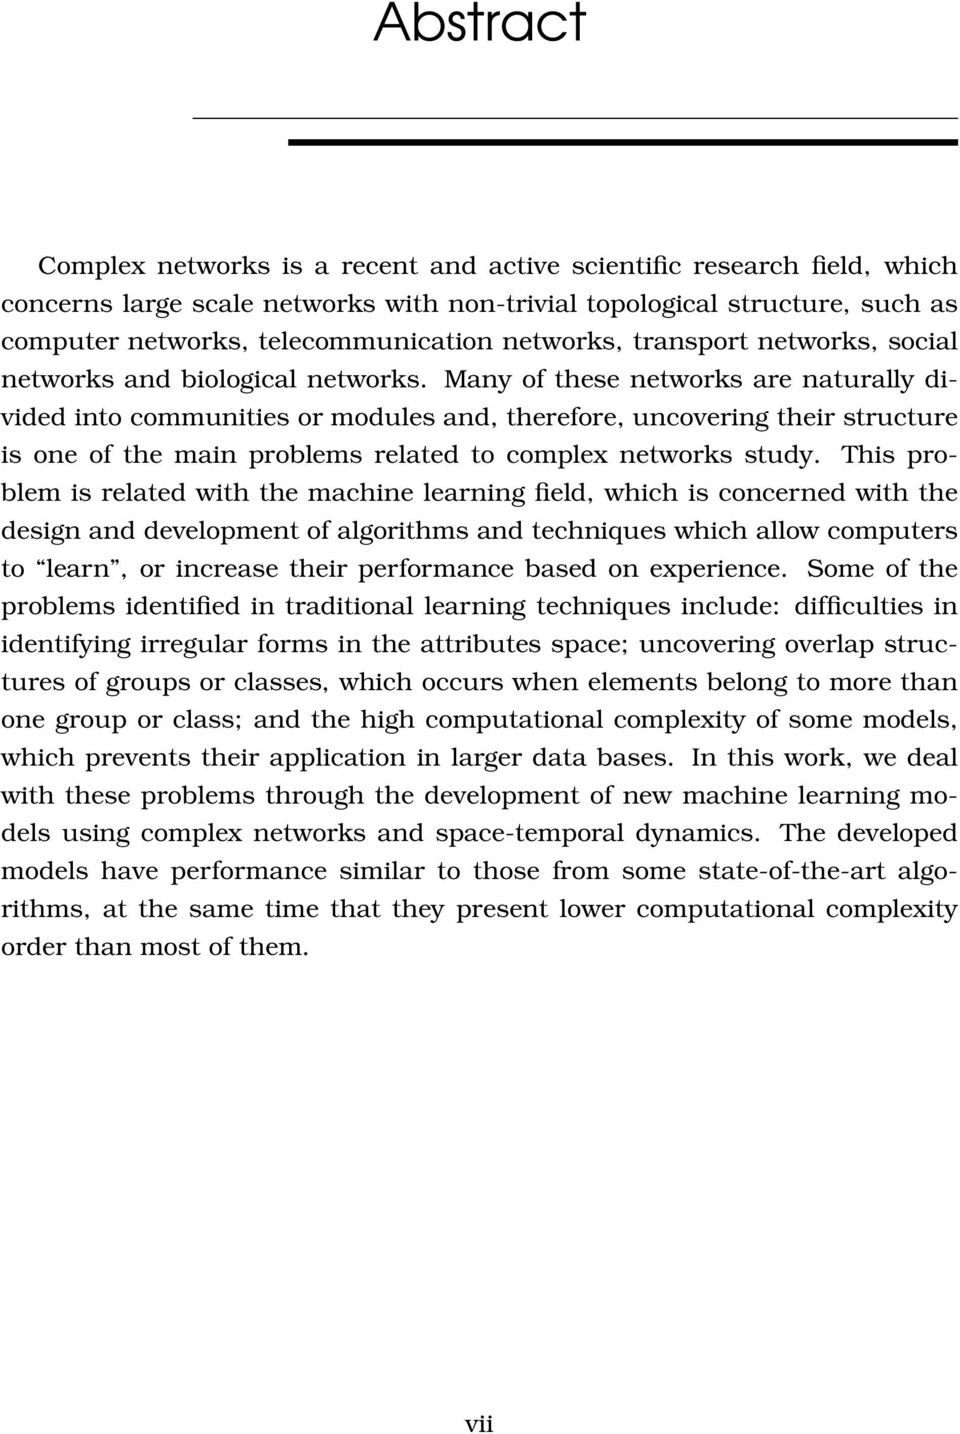 Many of these networks are naturally divided into communities or modules and, therefore, uncovering their structure is one of the main problems related to complex networks study.